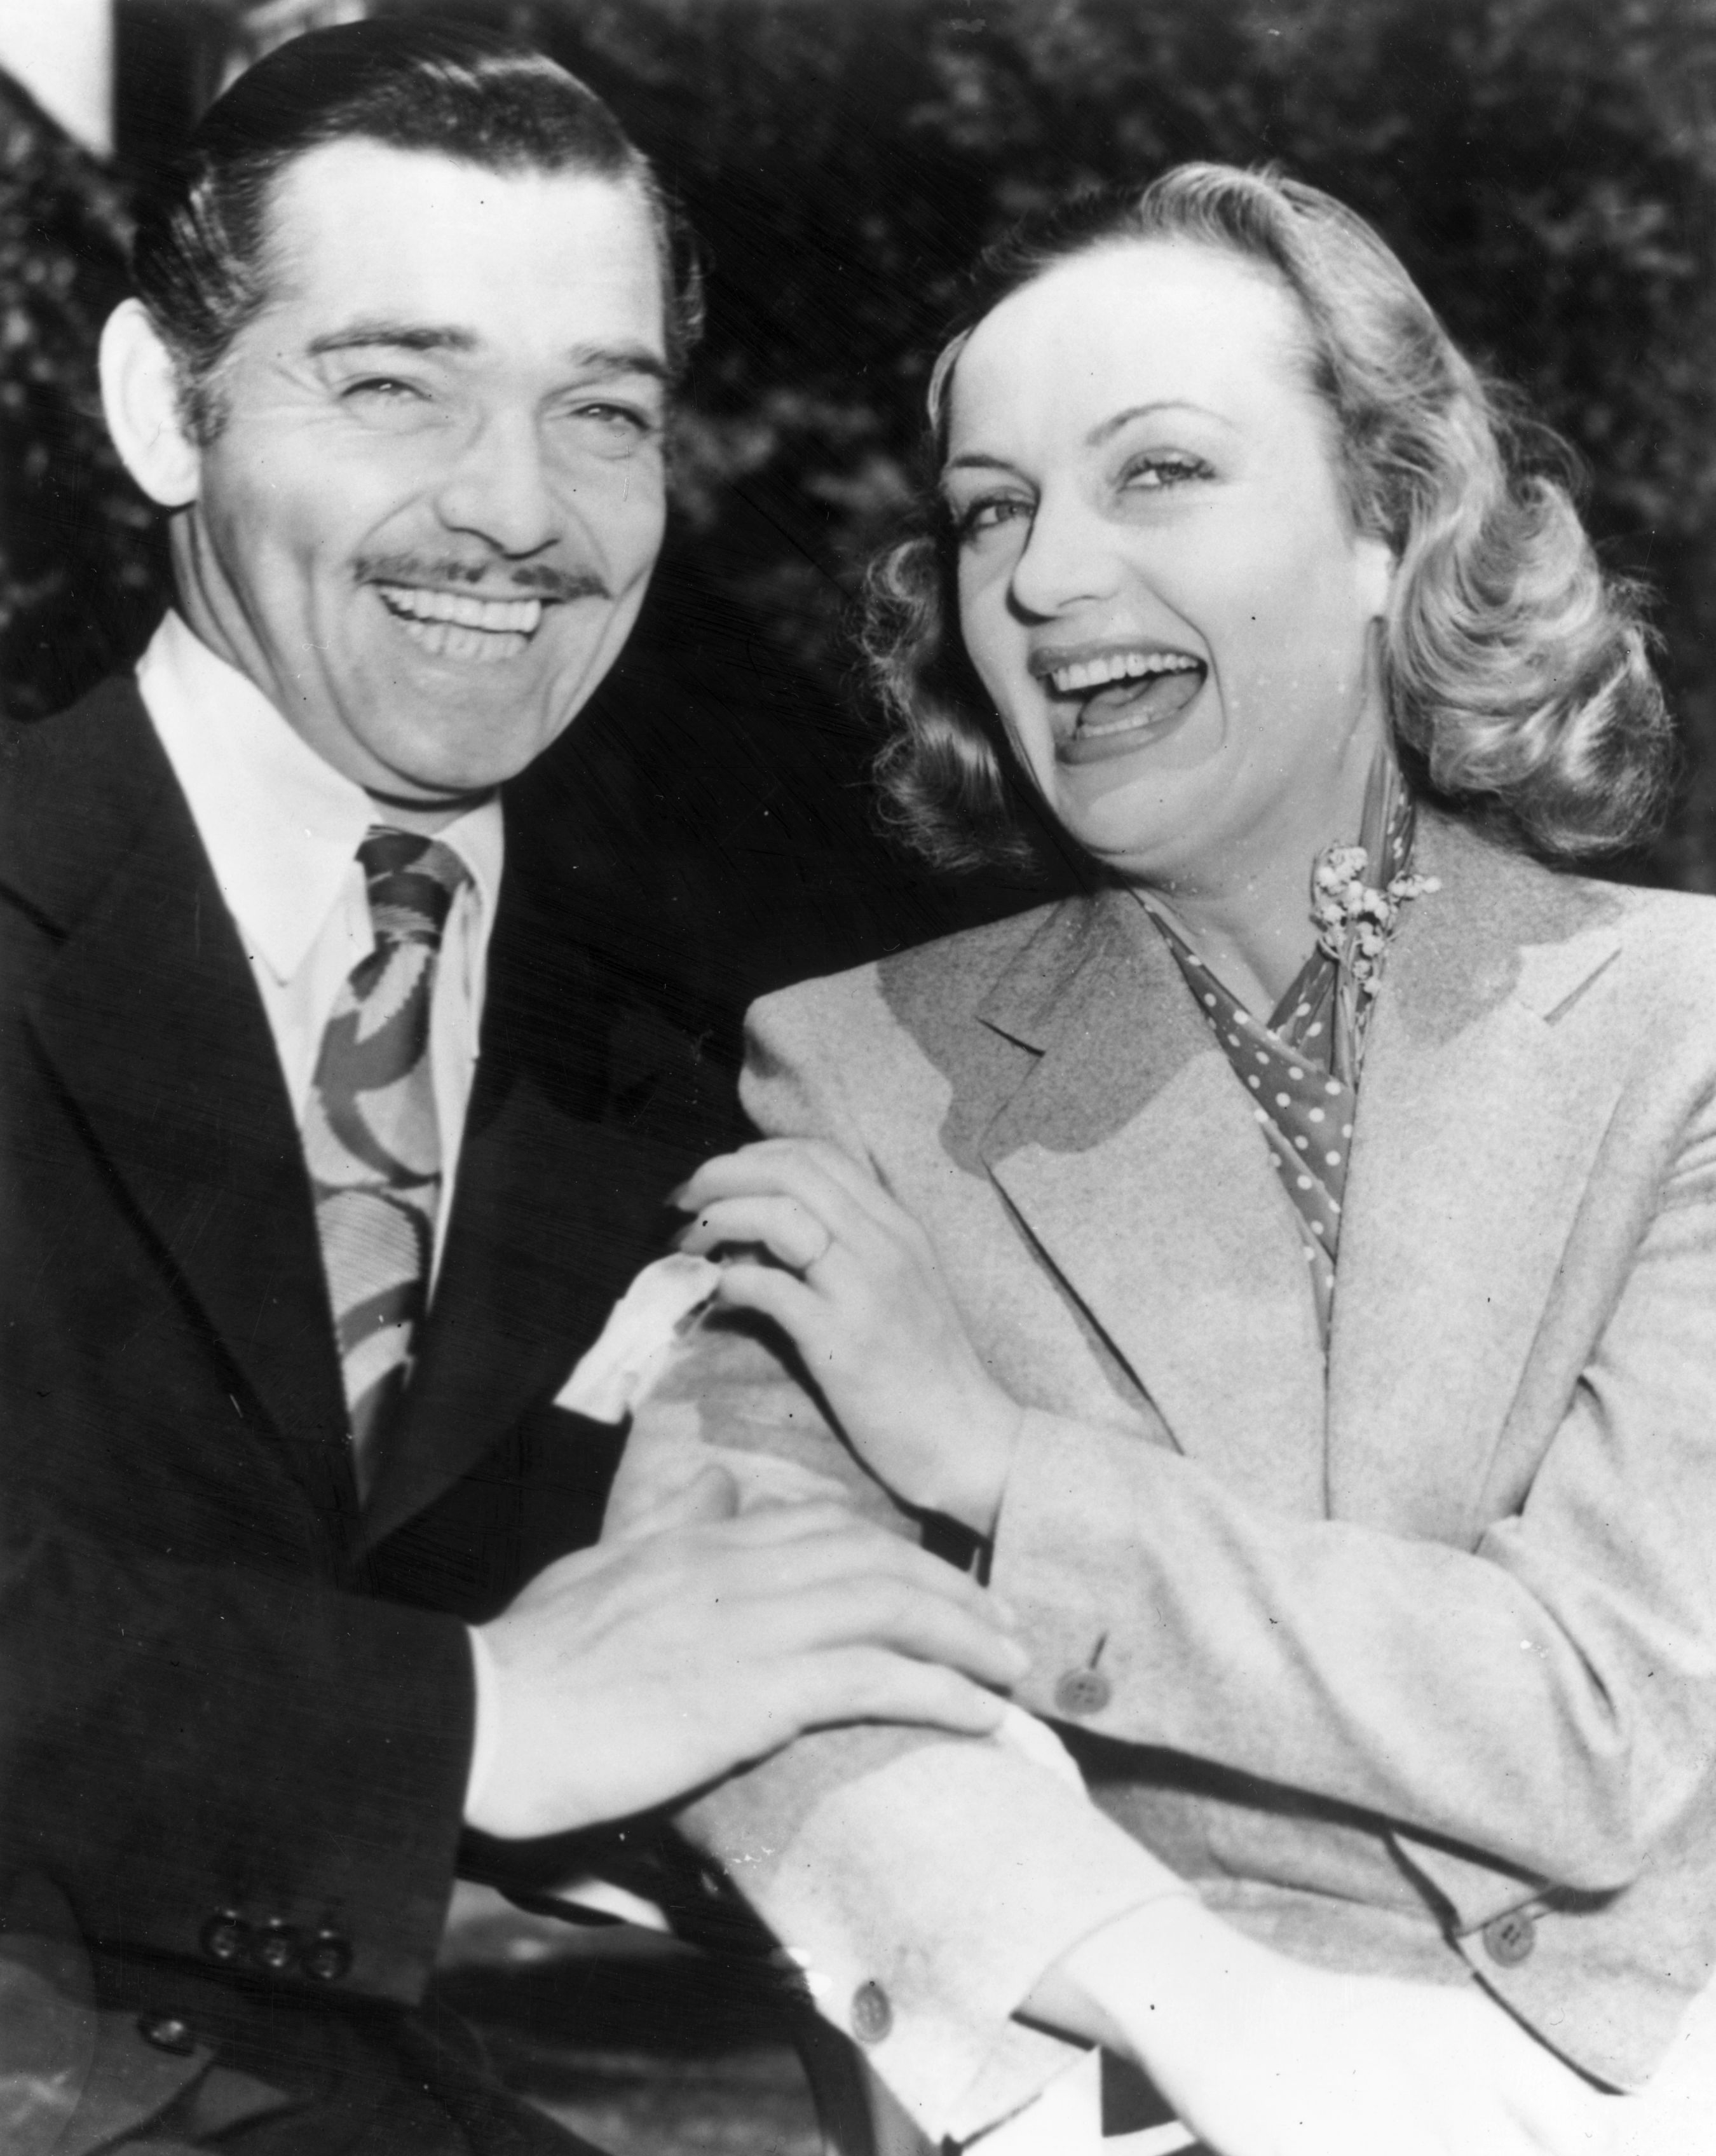 Clark Gable and Carole Lombard after their elopement, February 10, 1939. | Source: Getty Images